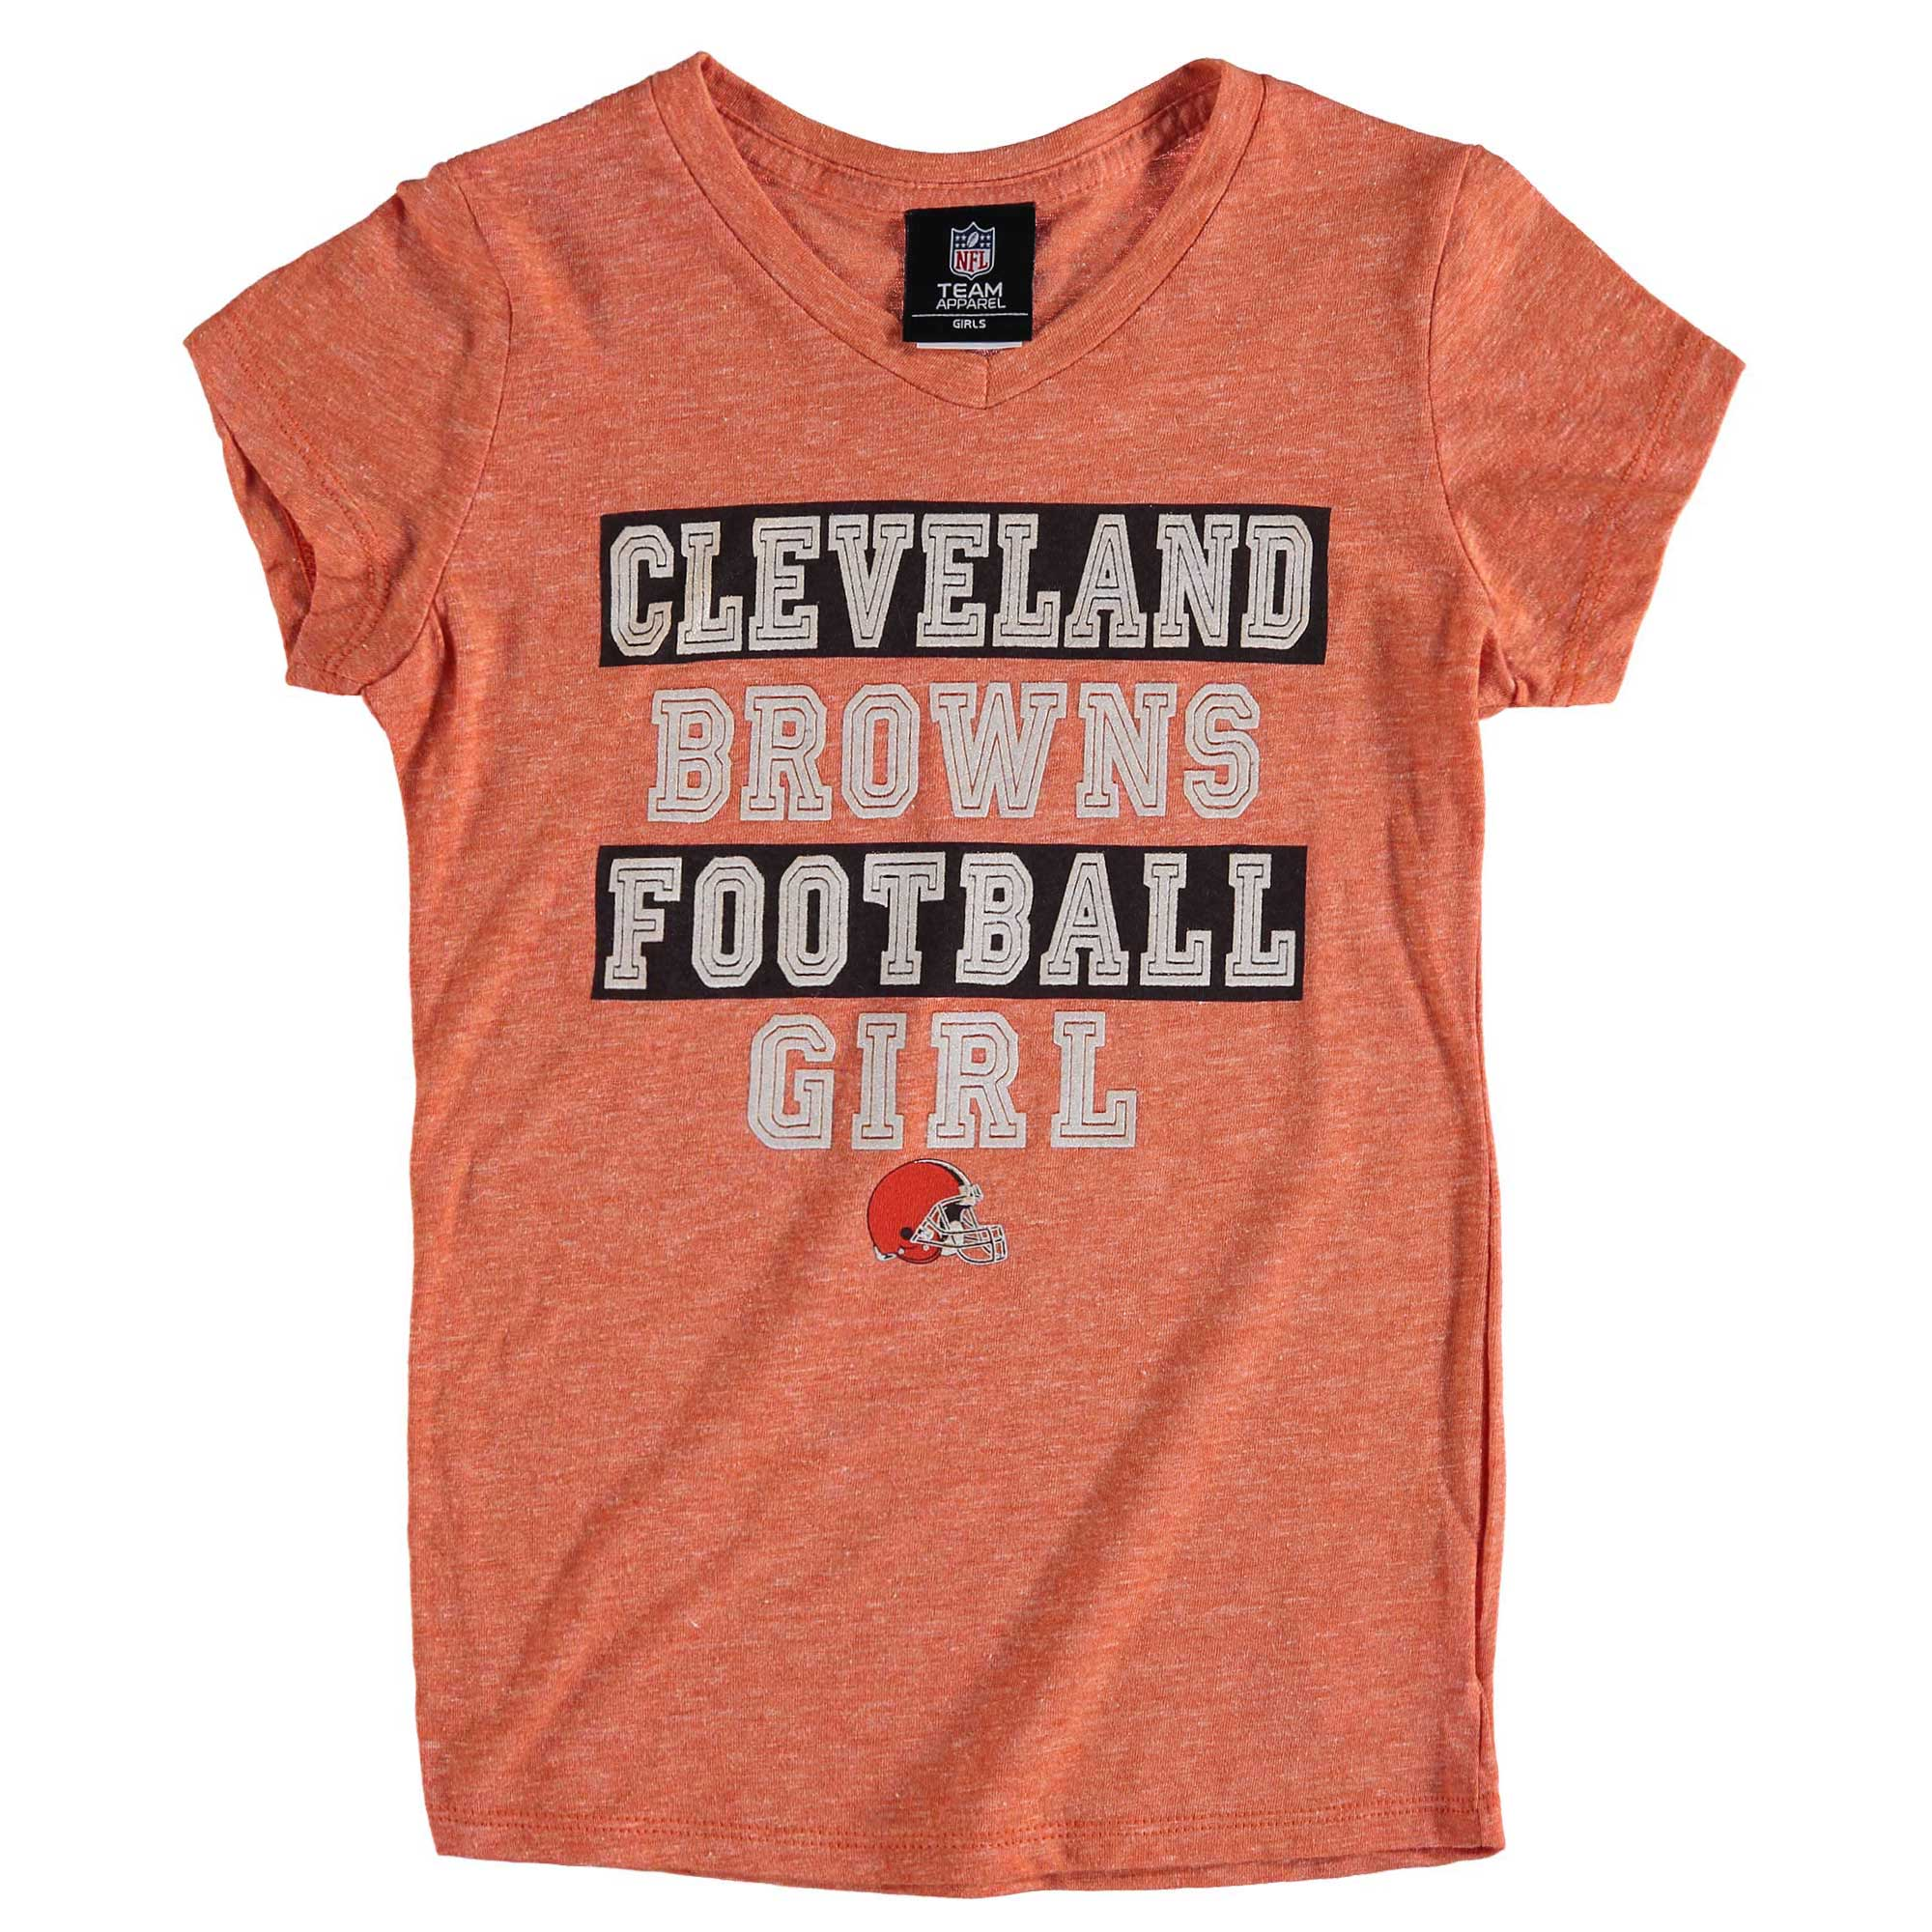 Cleveland Browns 5th & Ocean by New Era Girls Youth Football Girl Tri-Blend V-Neck T-Shirt - Orange